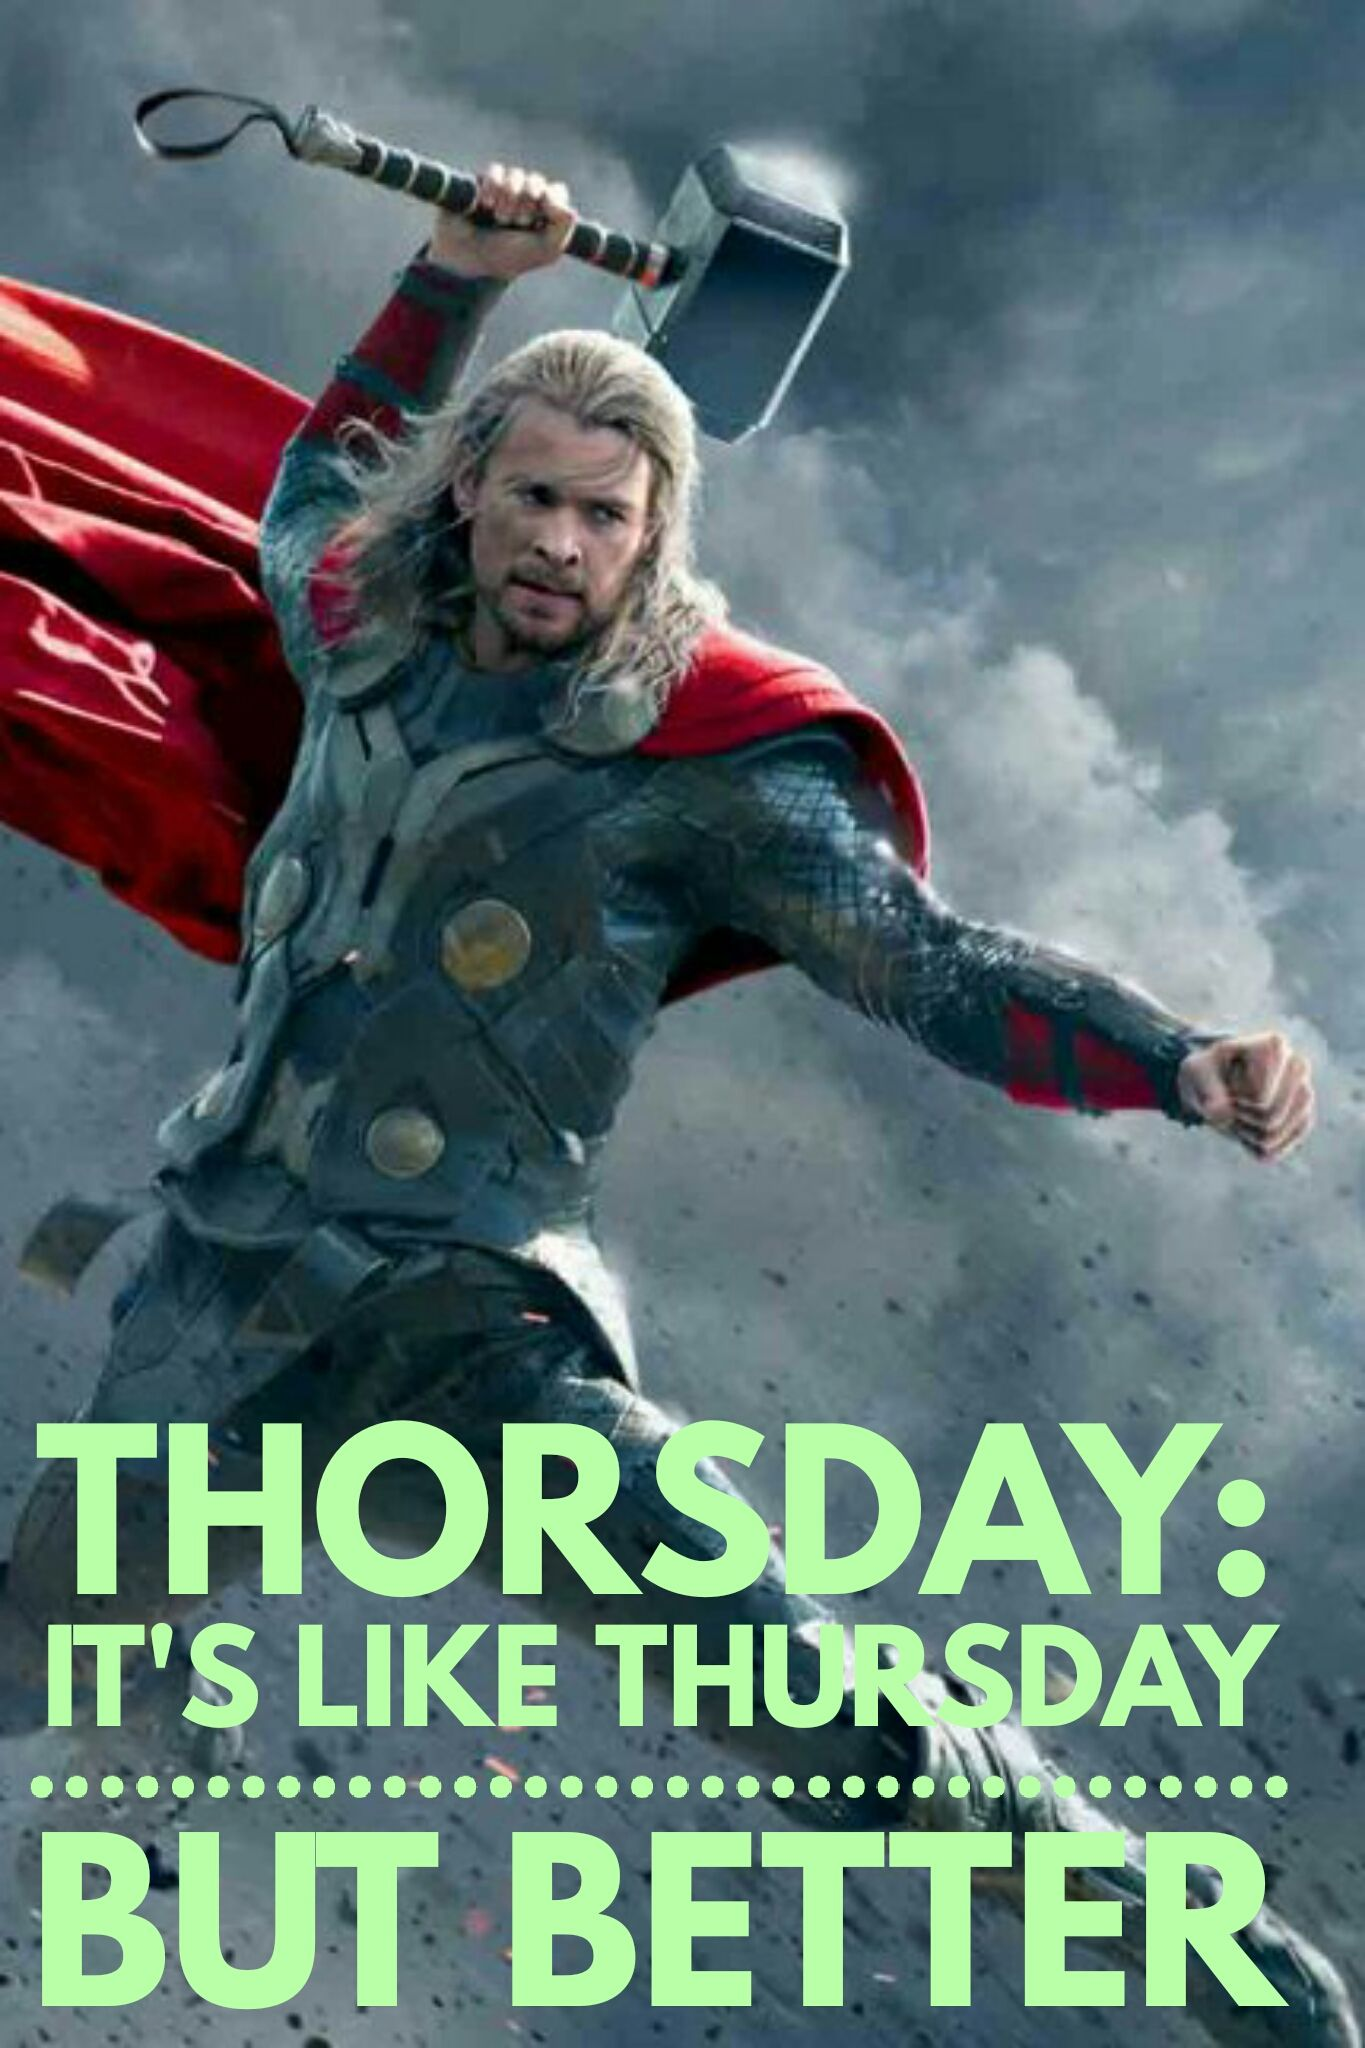 viking thorsday thursday